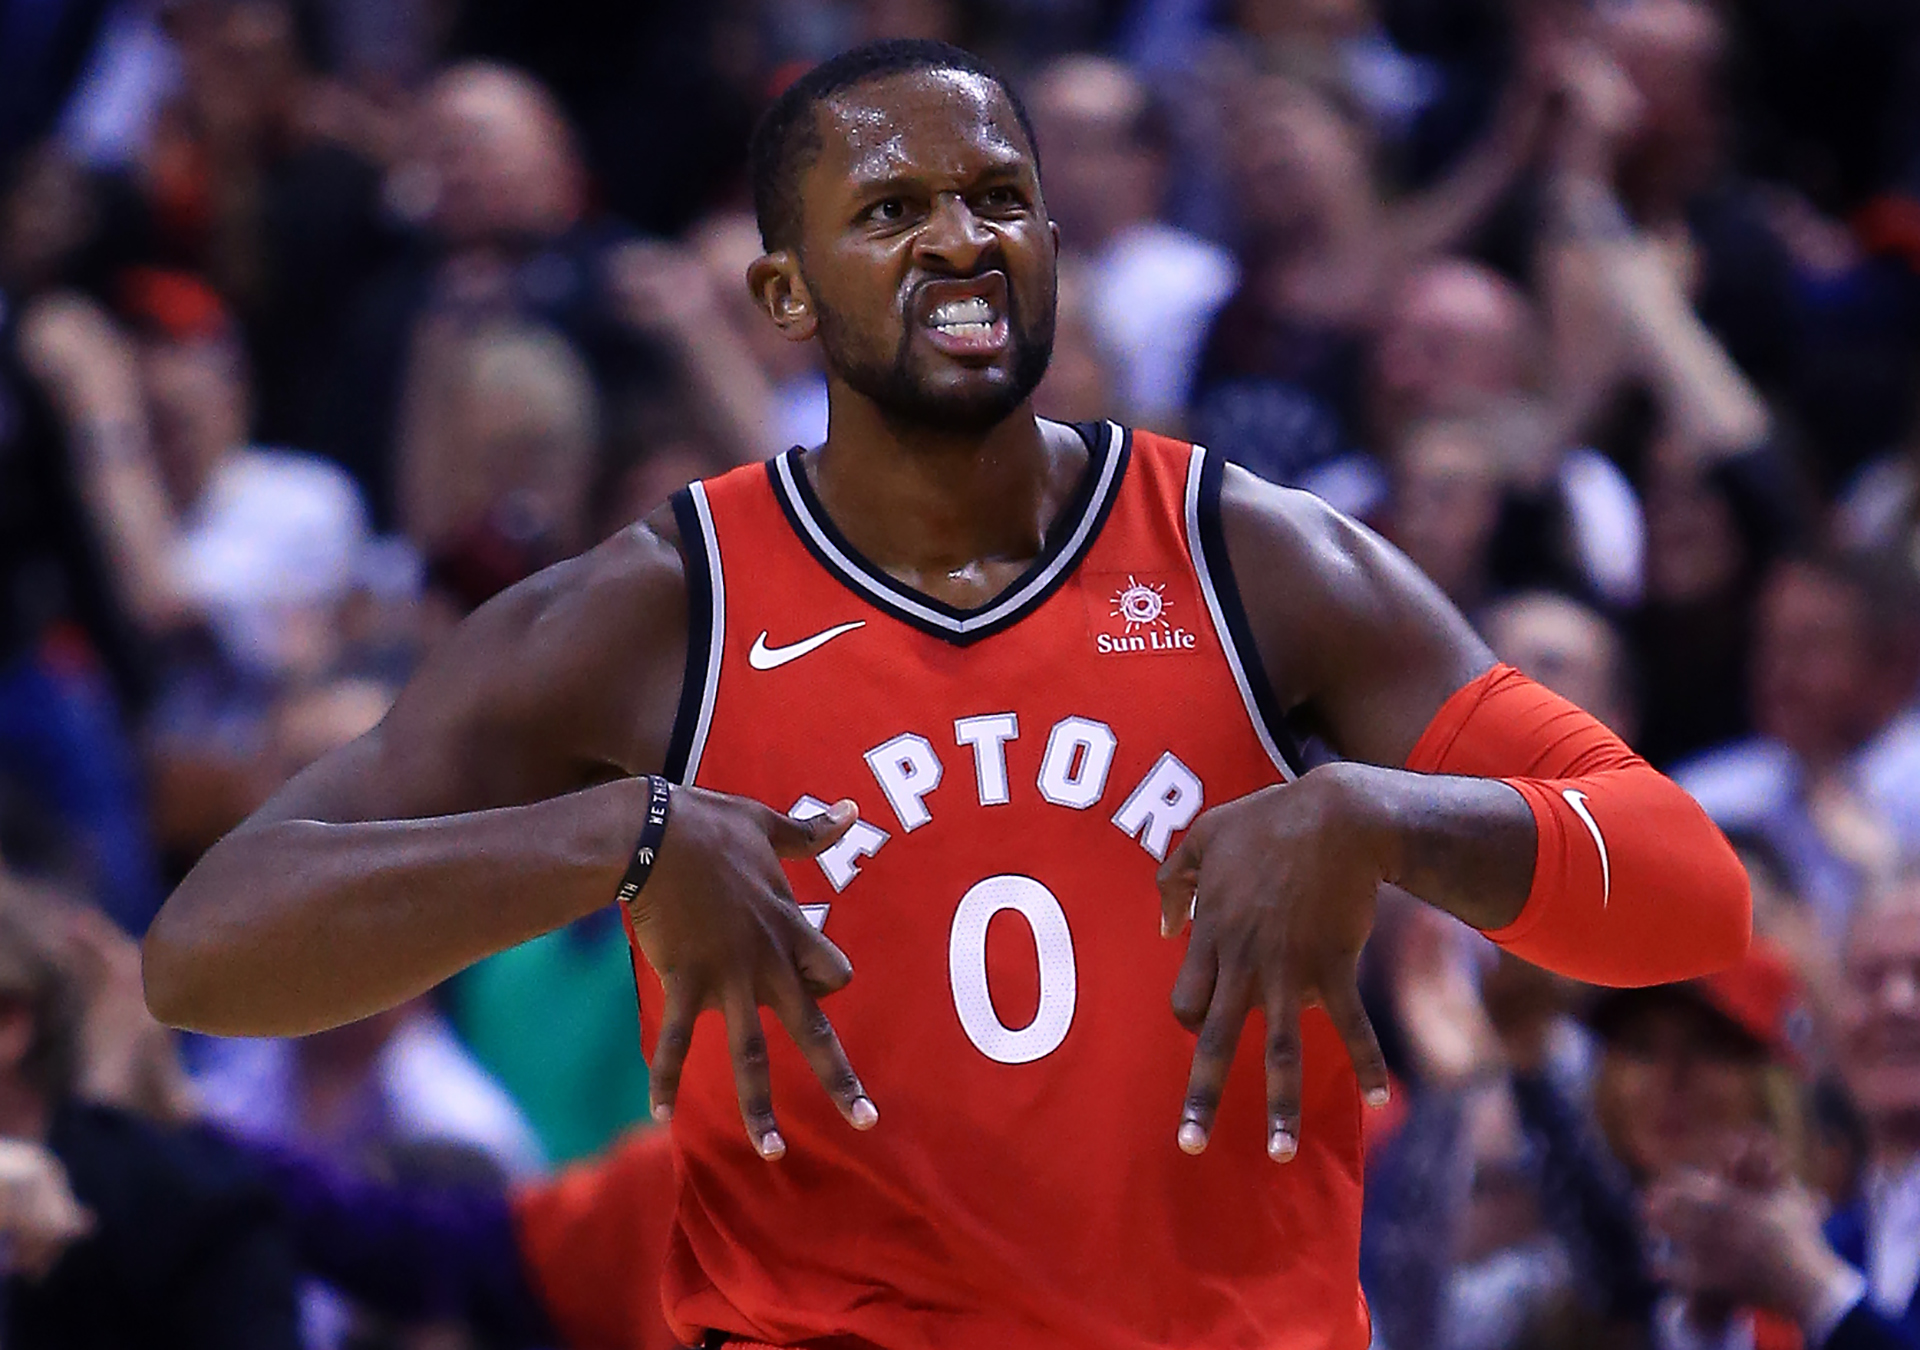 C.J. Miles celebrates celebrates a three-pointer during the first half against the Chicago Bulls at on Oct. 19, 2017 in Toronto, Canada. (Vaughn Ridley/Getty Images)